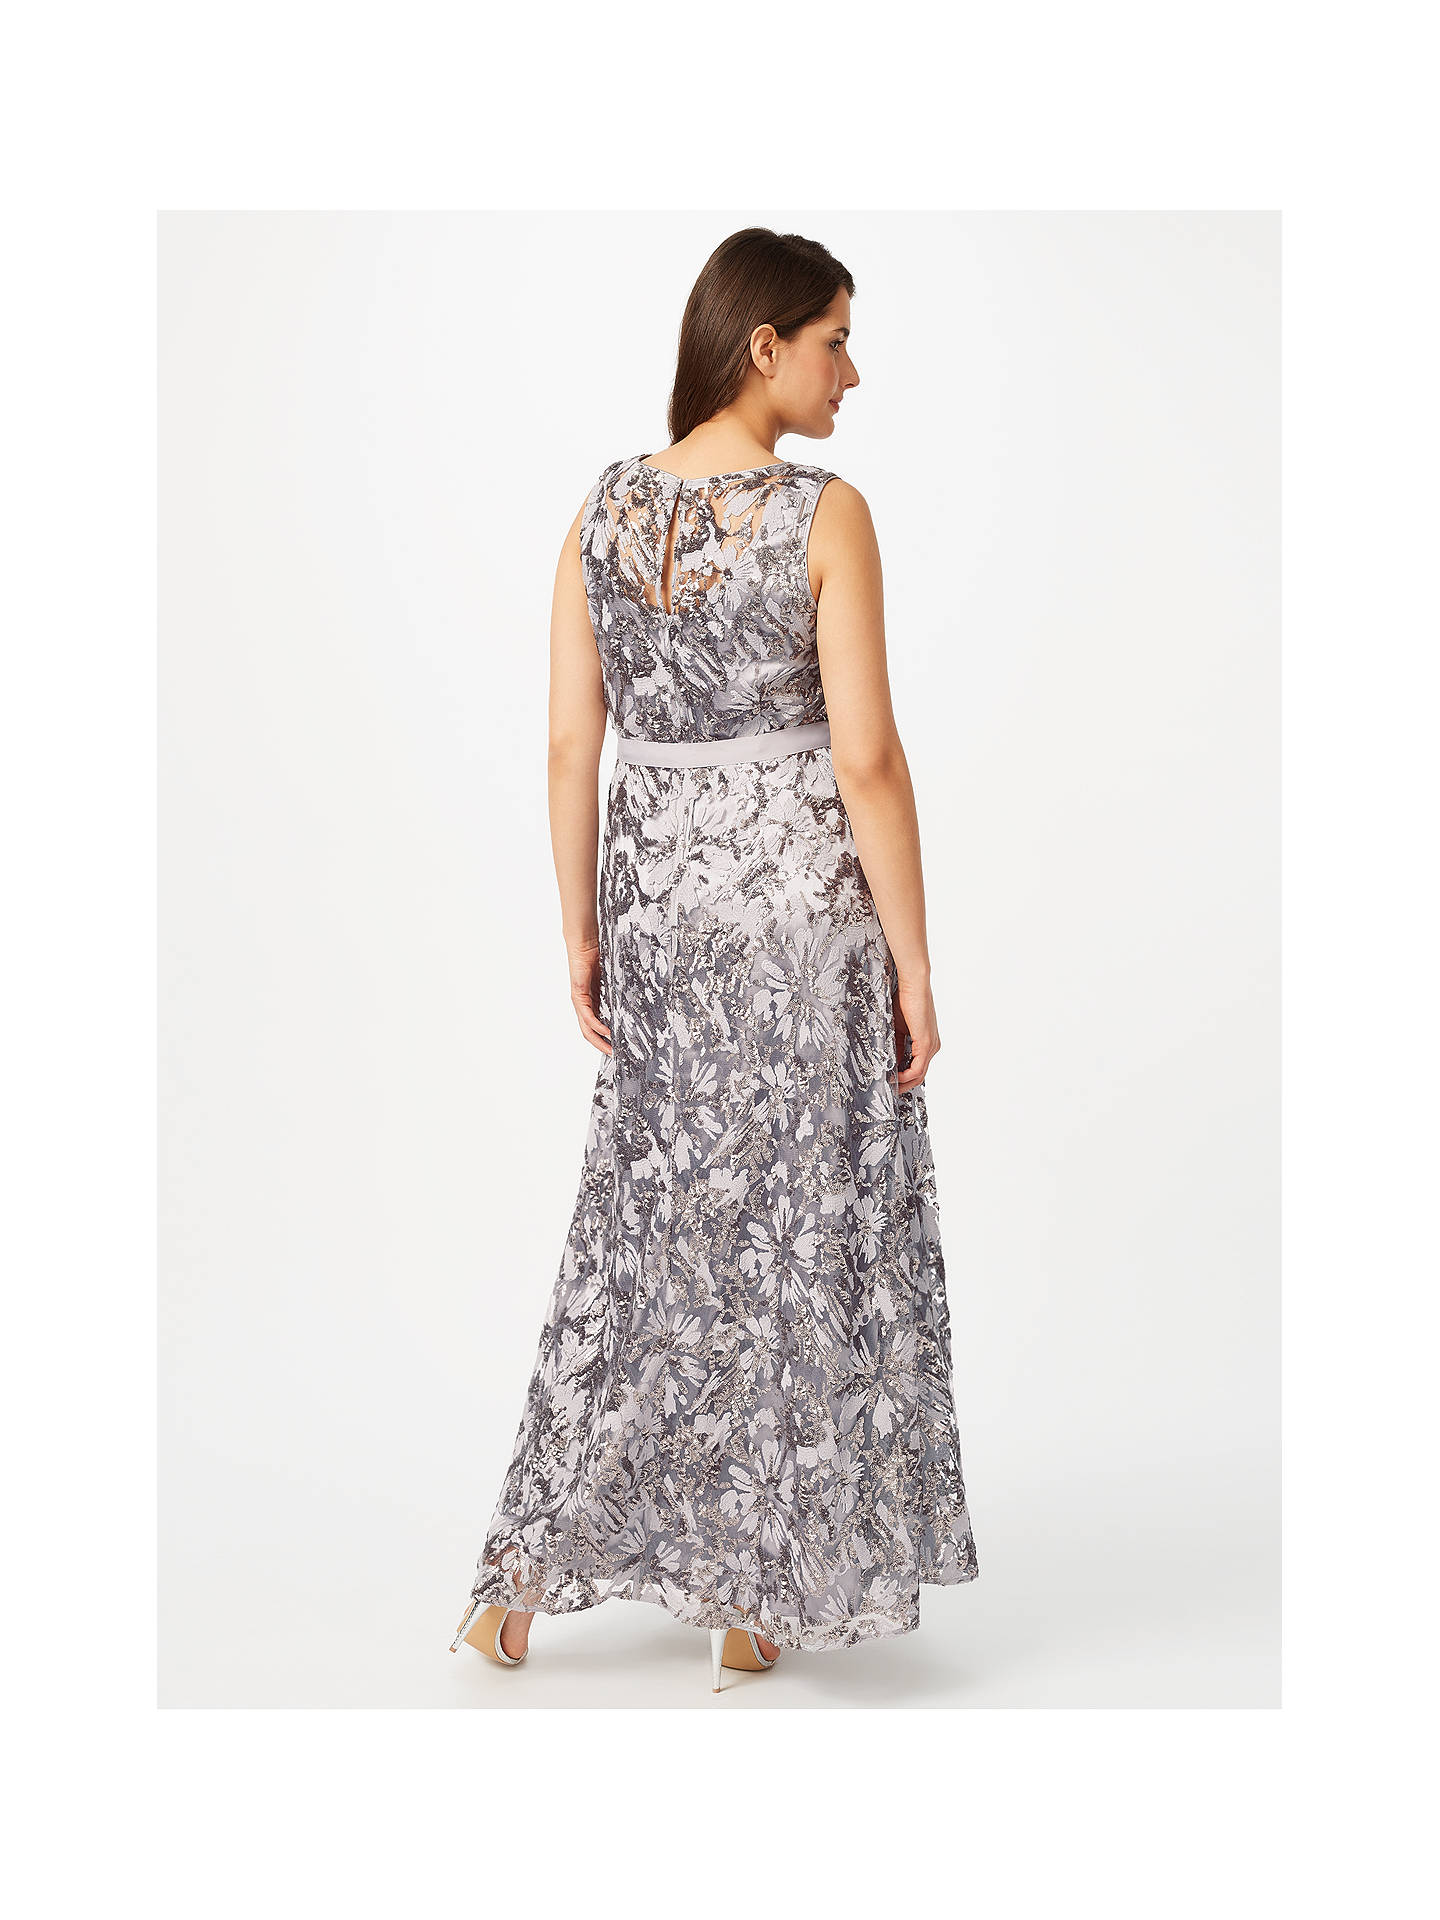 BuyStudio 8 Mercury Maxi Dress, Silver, 16 Online at johnlewis.com